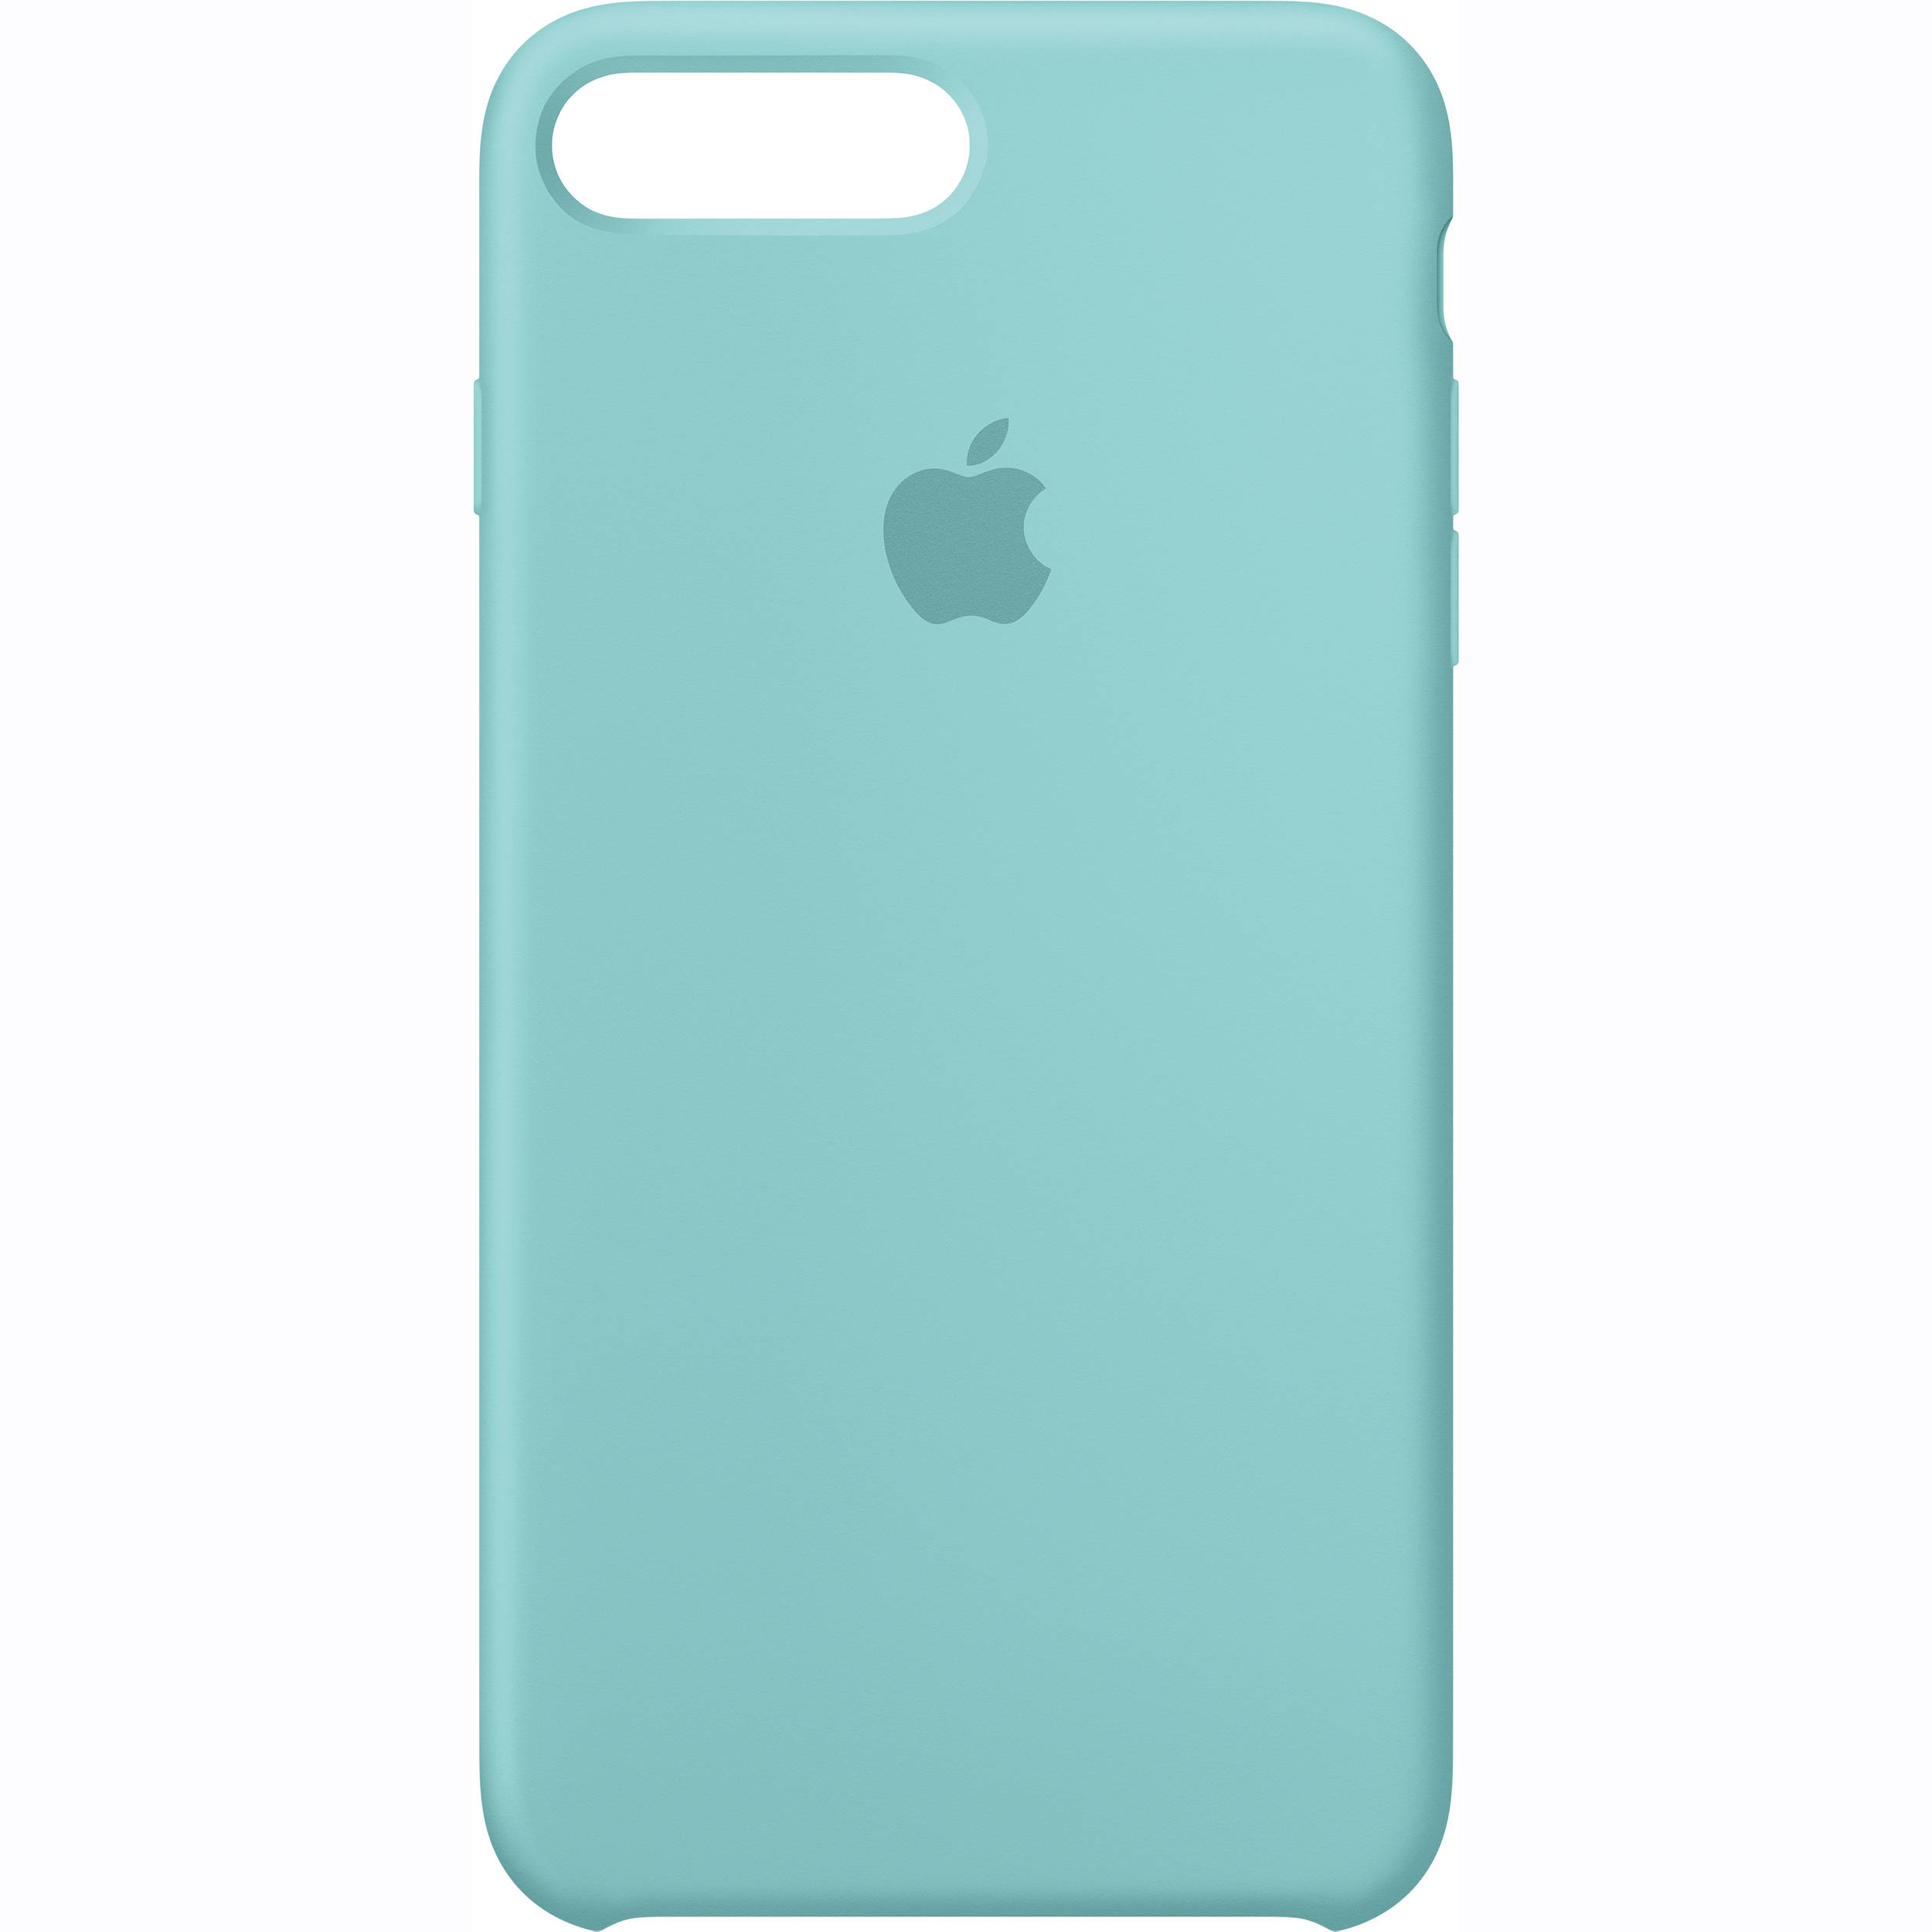 iphone case 7 plus silicone